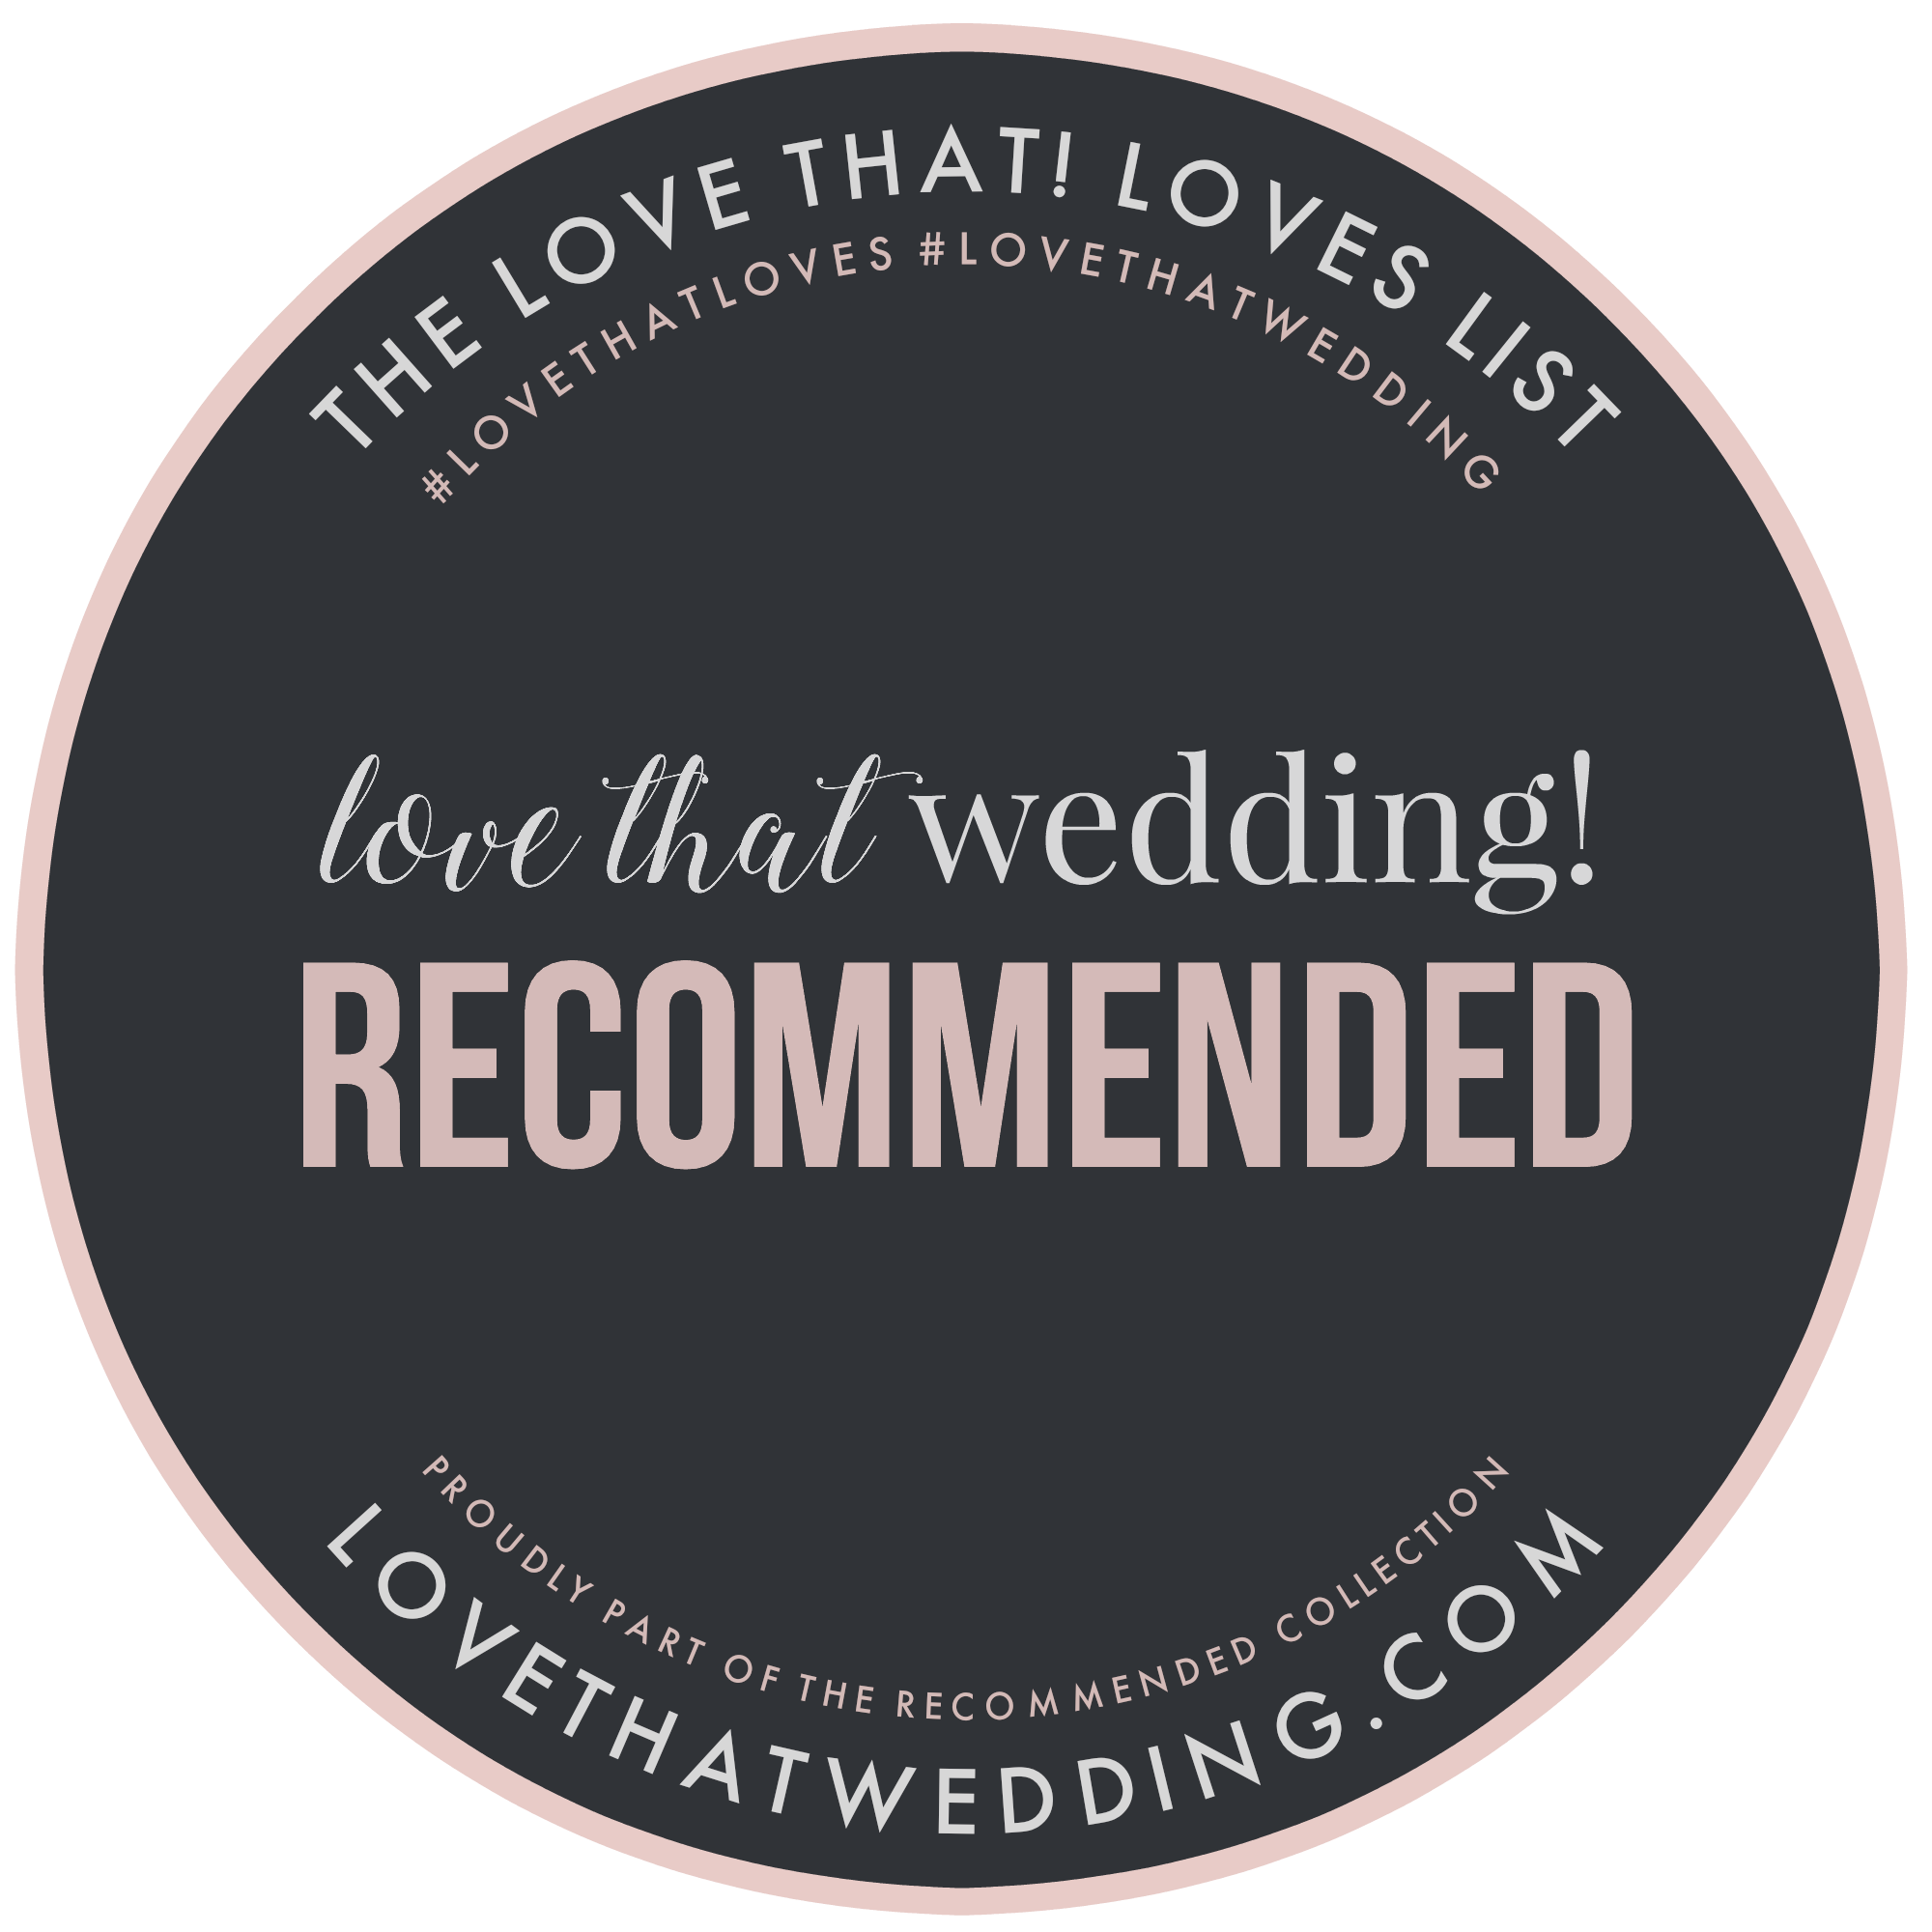 love that wedding (recommended)